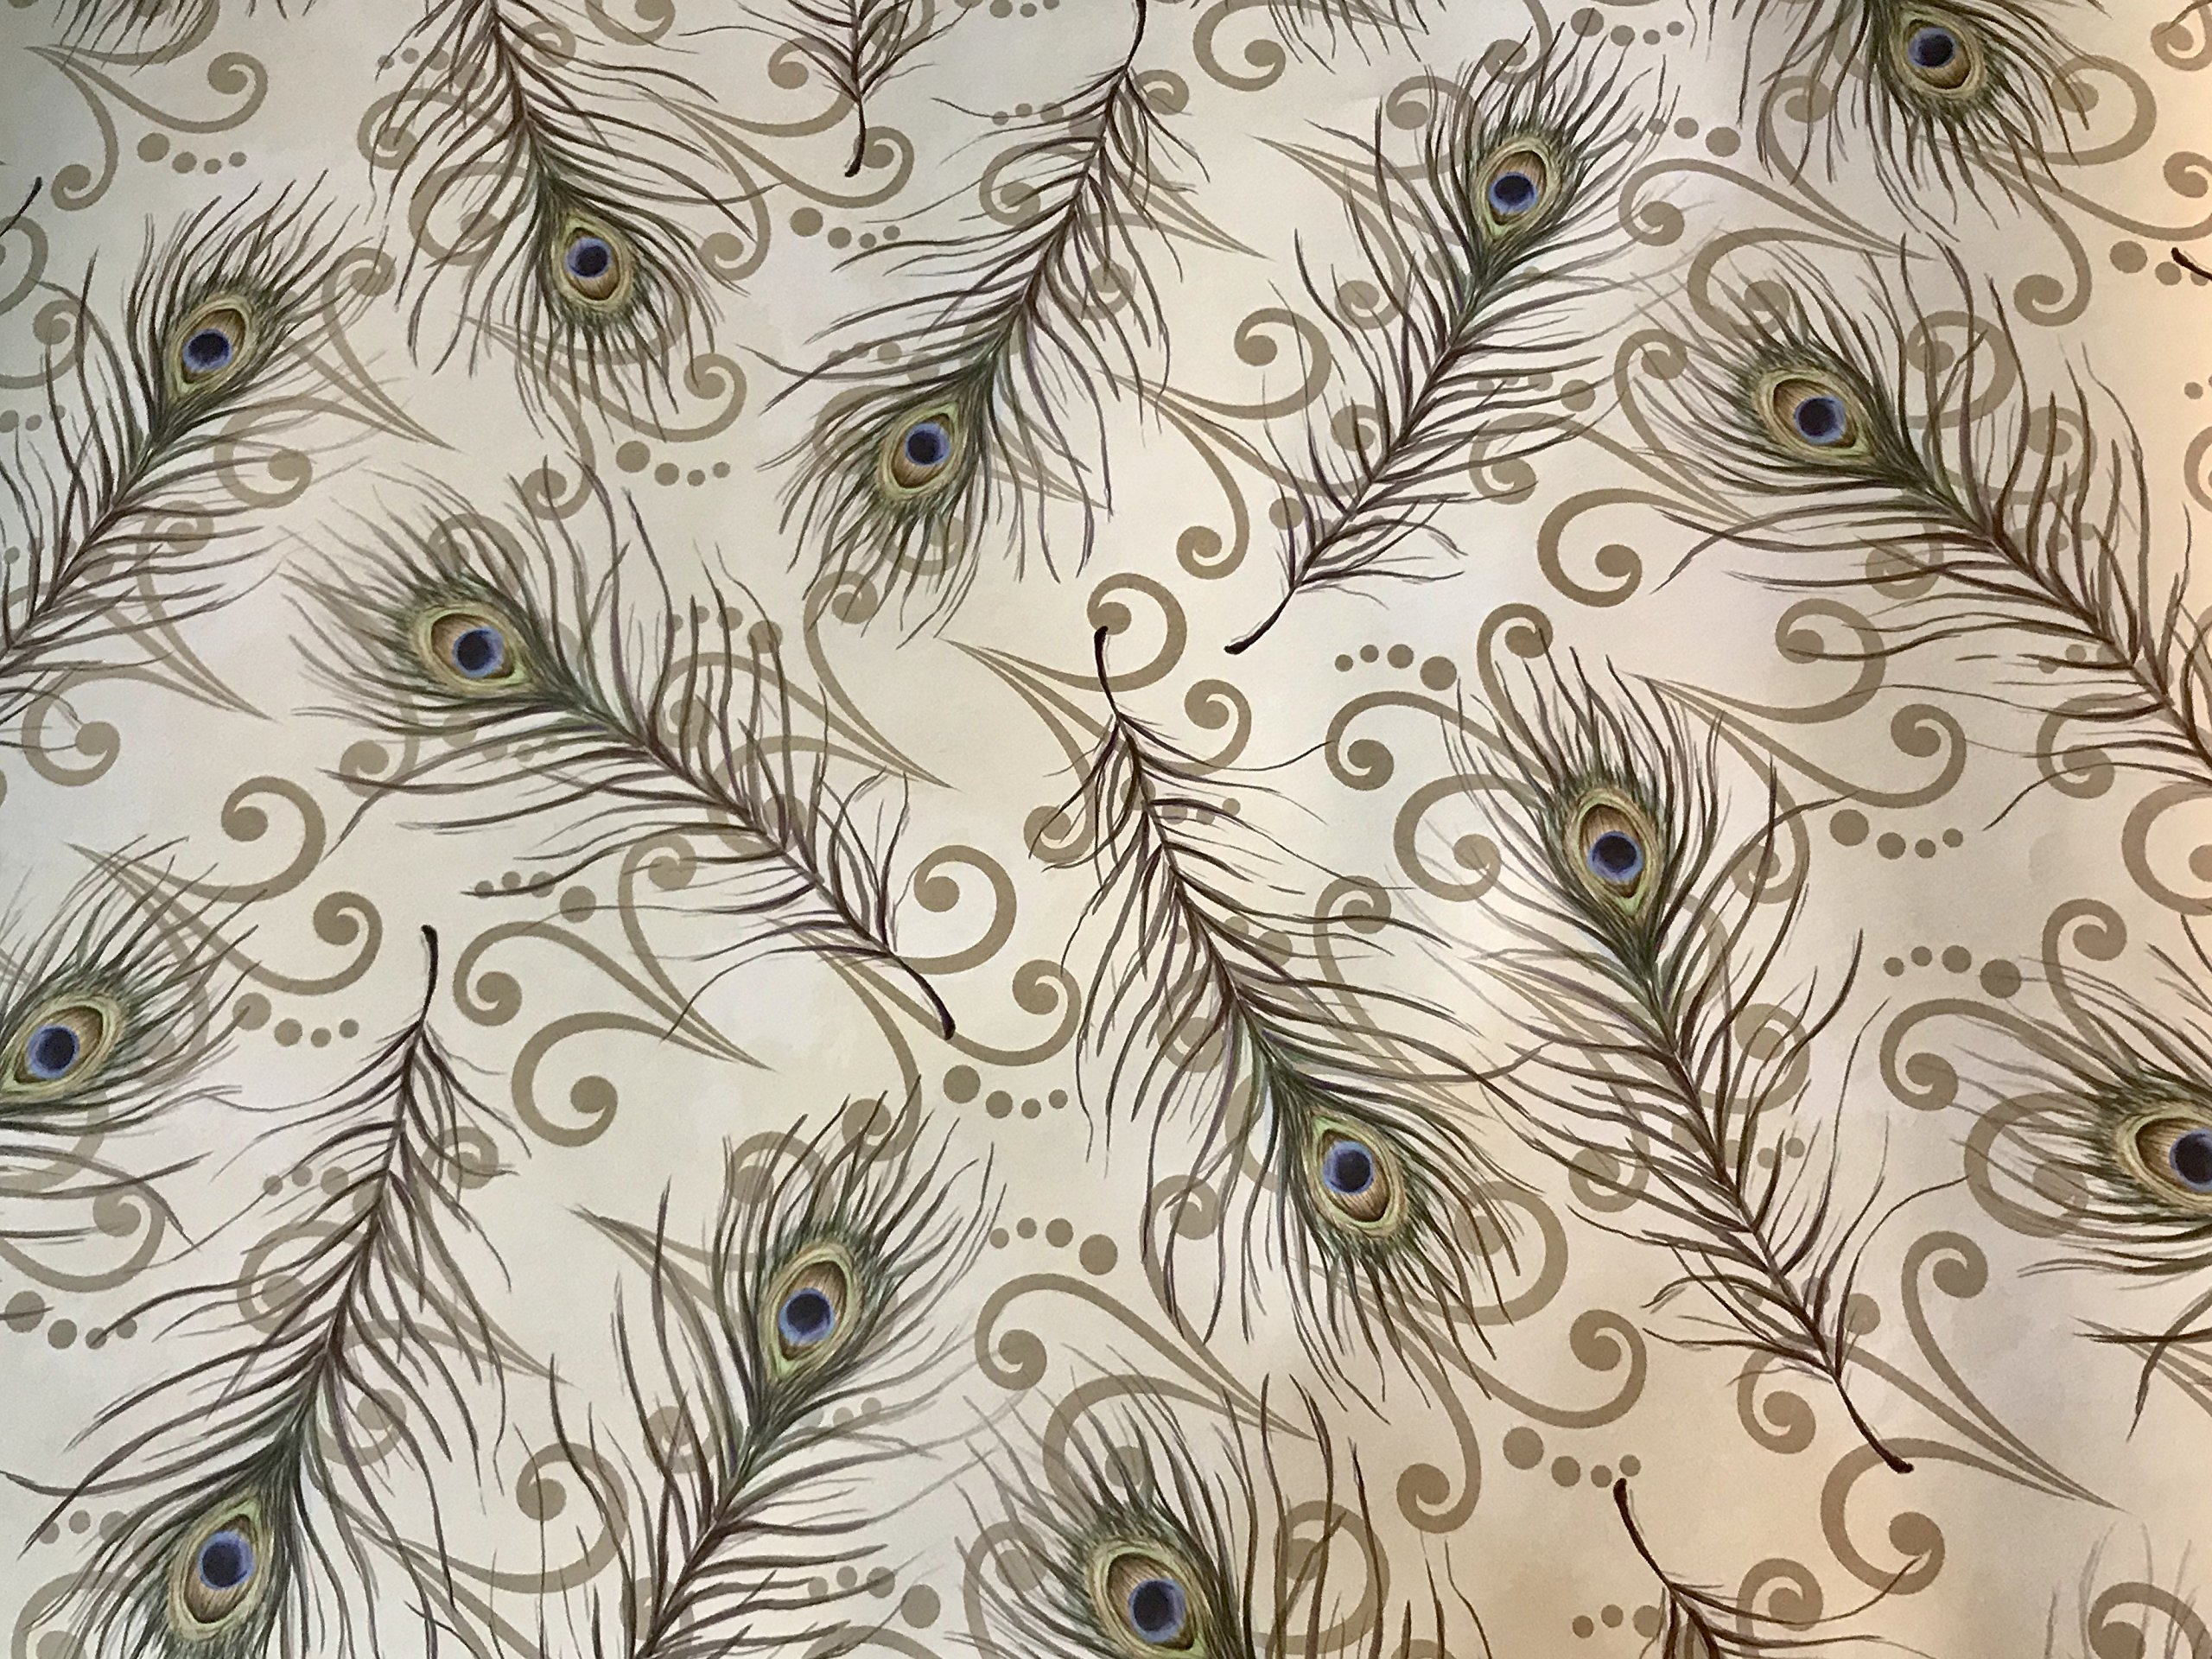 """Lady Jayne Lavender Scented Drawer Liners 23"""" by 16.5"""" Peacock -6 sheets"""